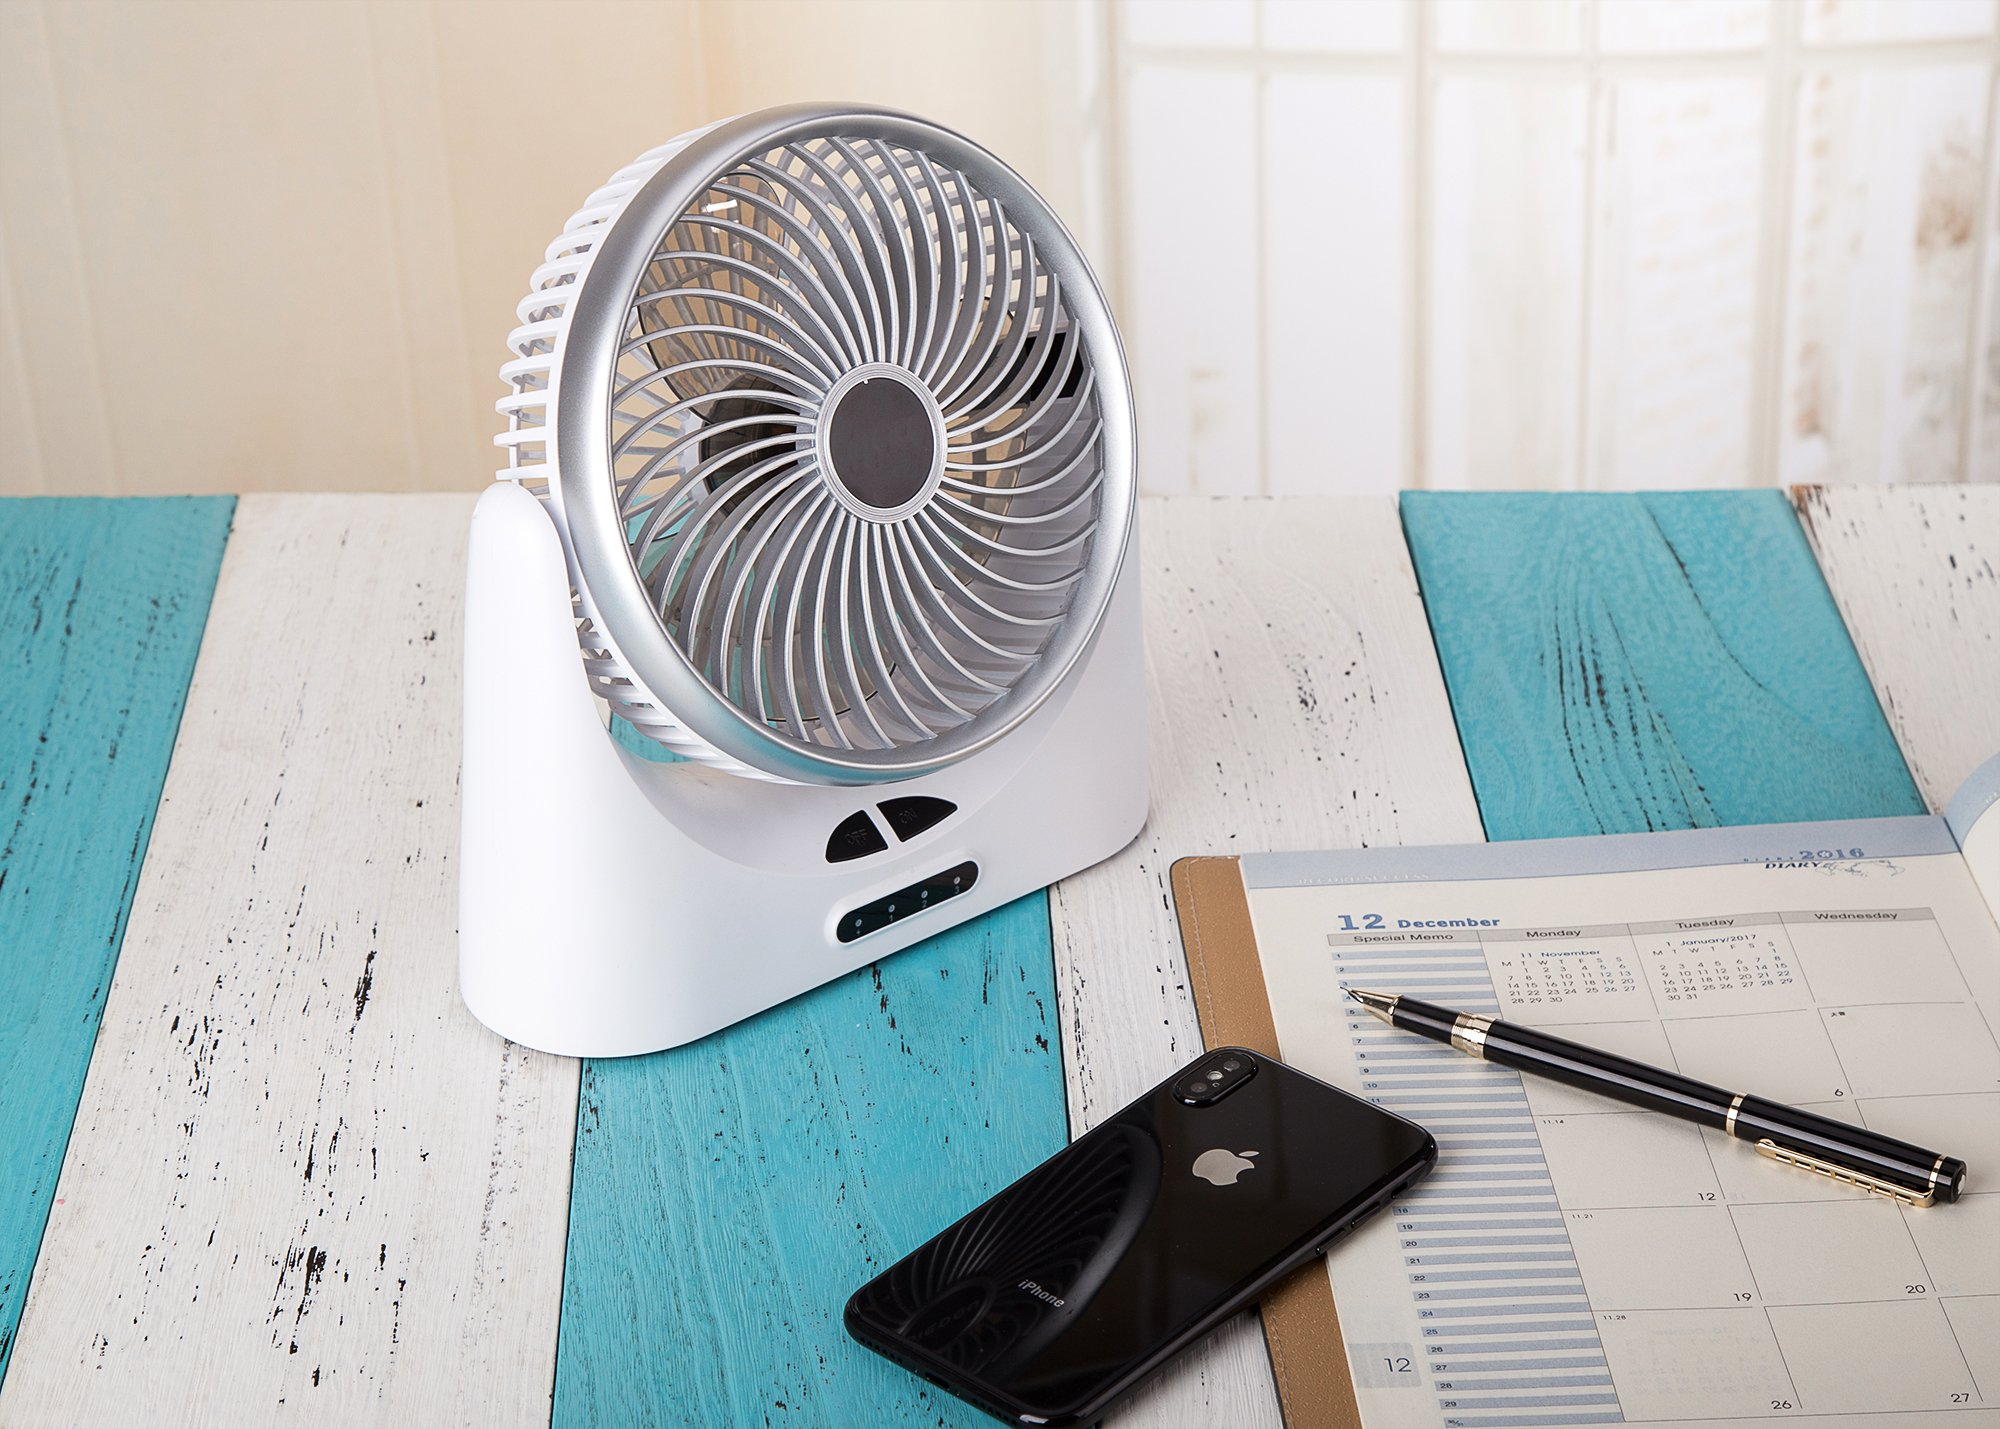 HCMAOE Mini USB Table Desk Personal Portable Air Circulator Fan 3 Speed, Lower Noise, Powered by USB or 4000mAh Rechargeable 18650 Battery with Power bank Function, Side LED Light for Office, (Silver) by HCMAOE (Image #7)